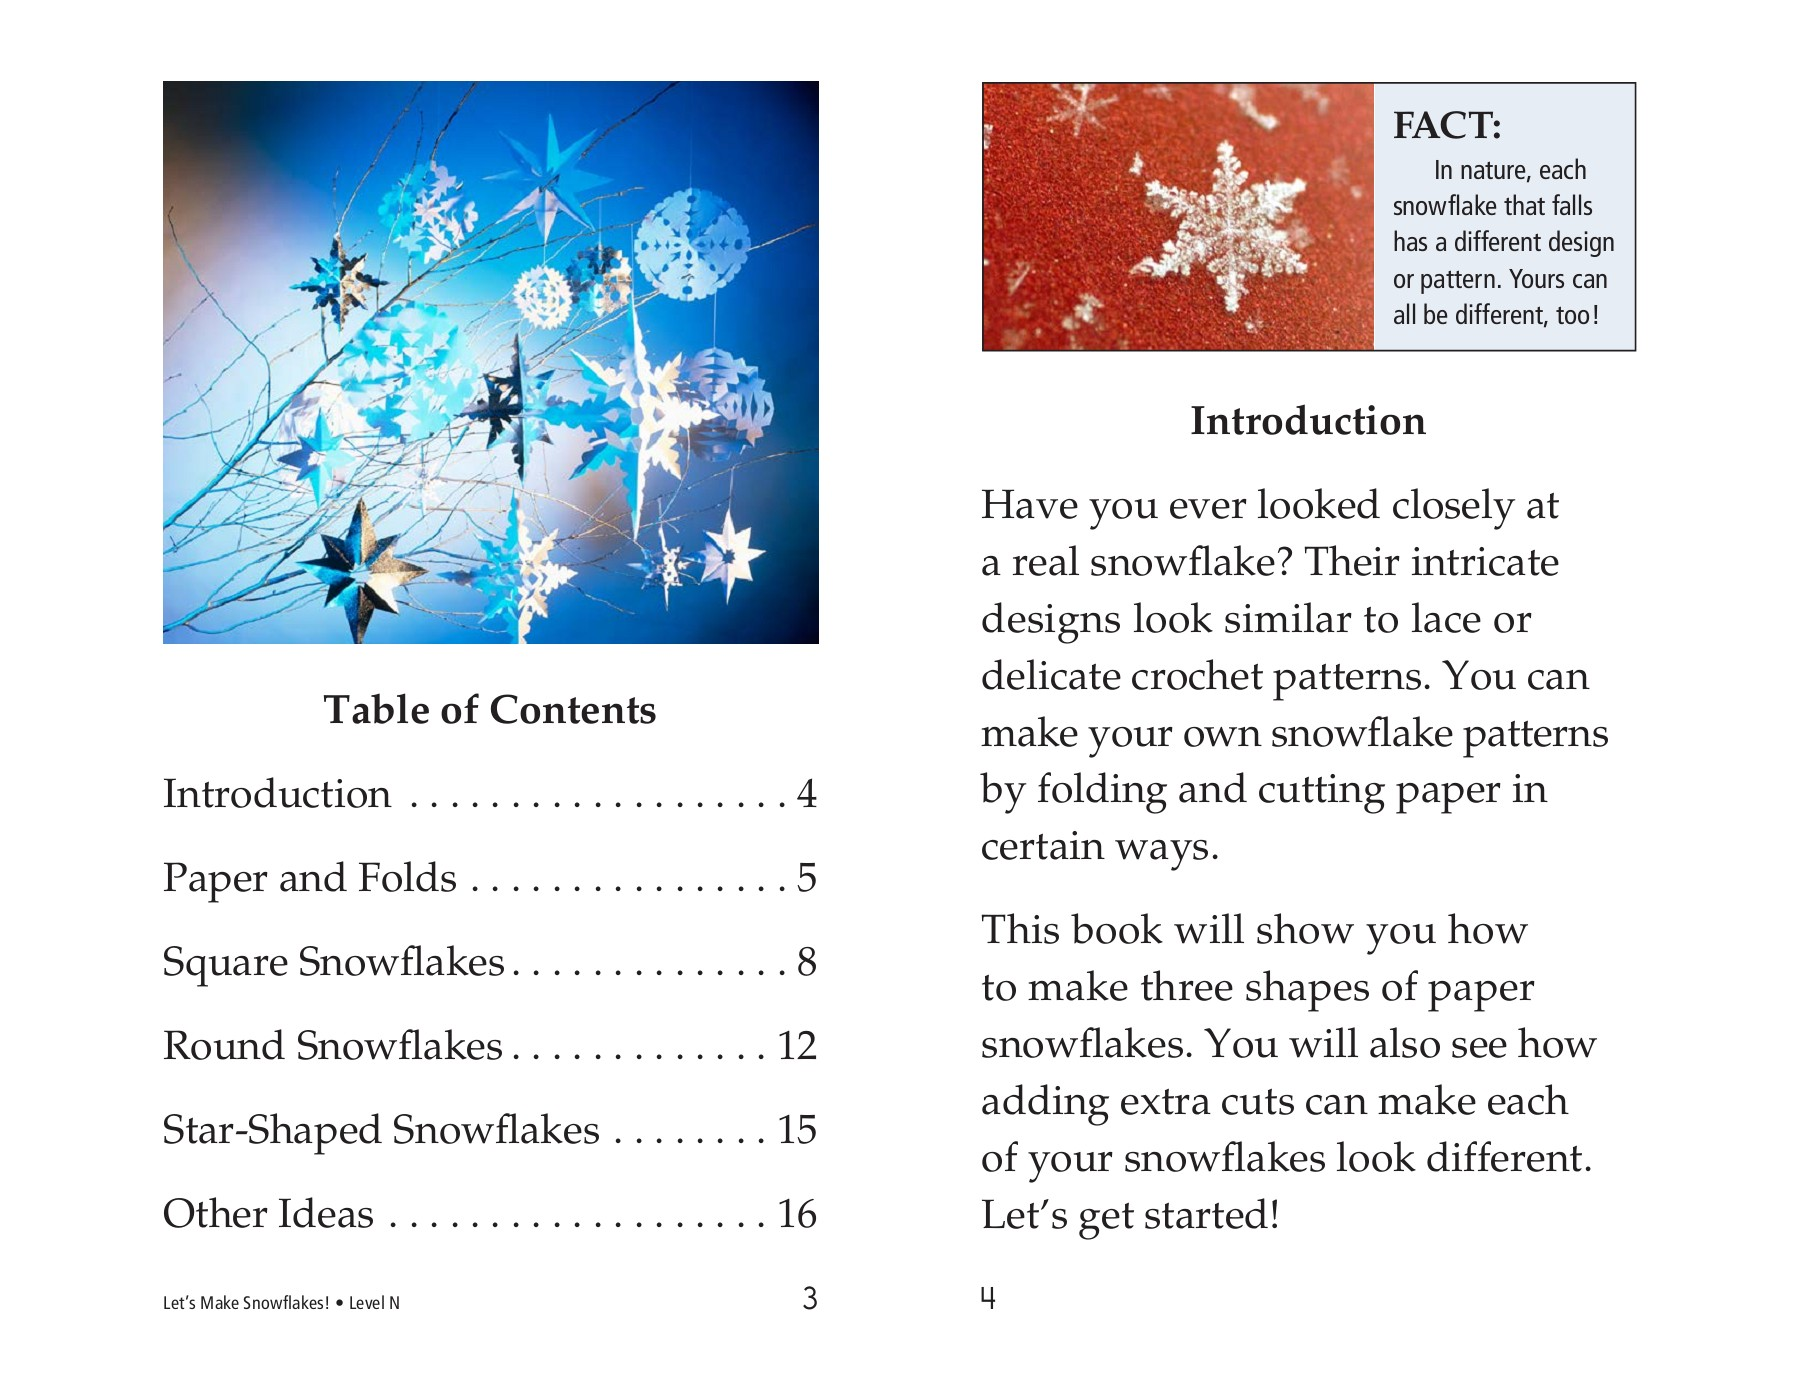 Reading A Z Lets Make Snowflakes Pages 1 9 Text Version Anyflip Snowflakescrochetpatterndiagram